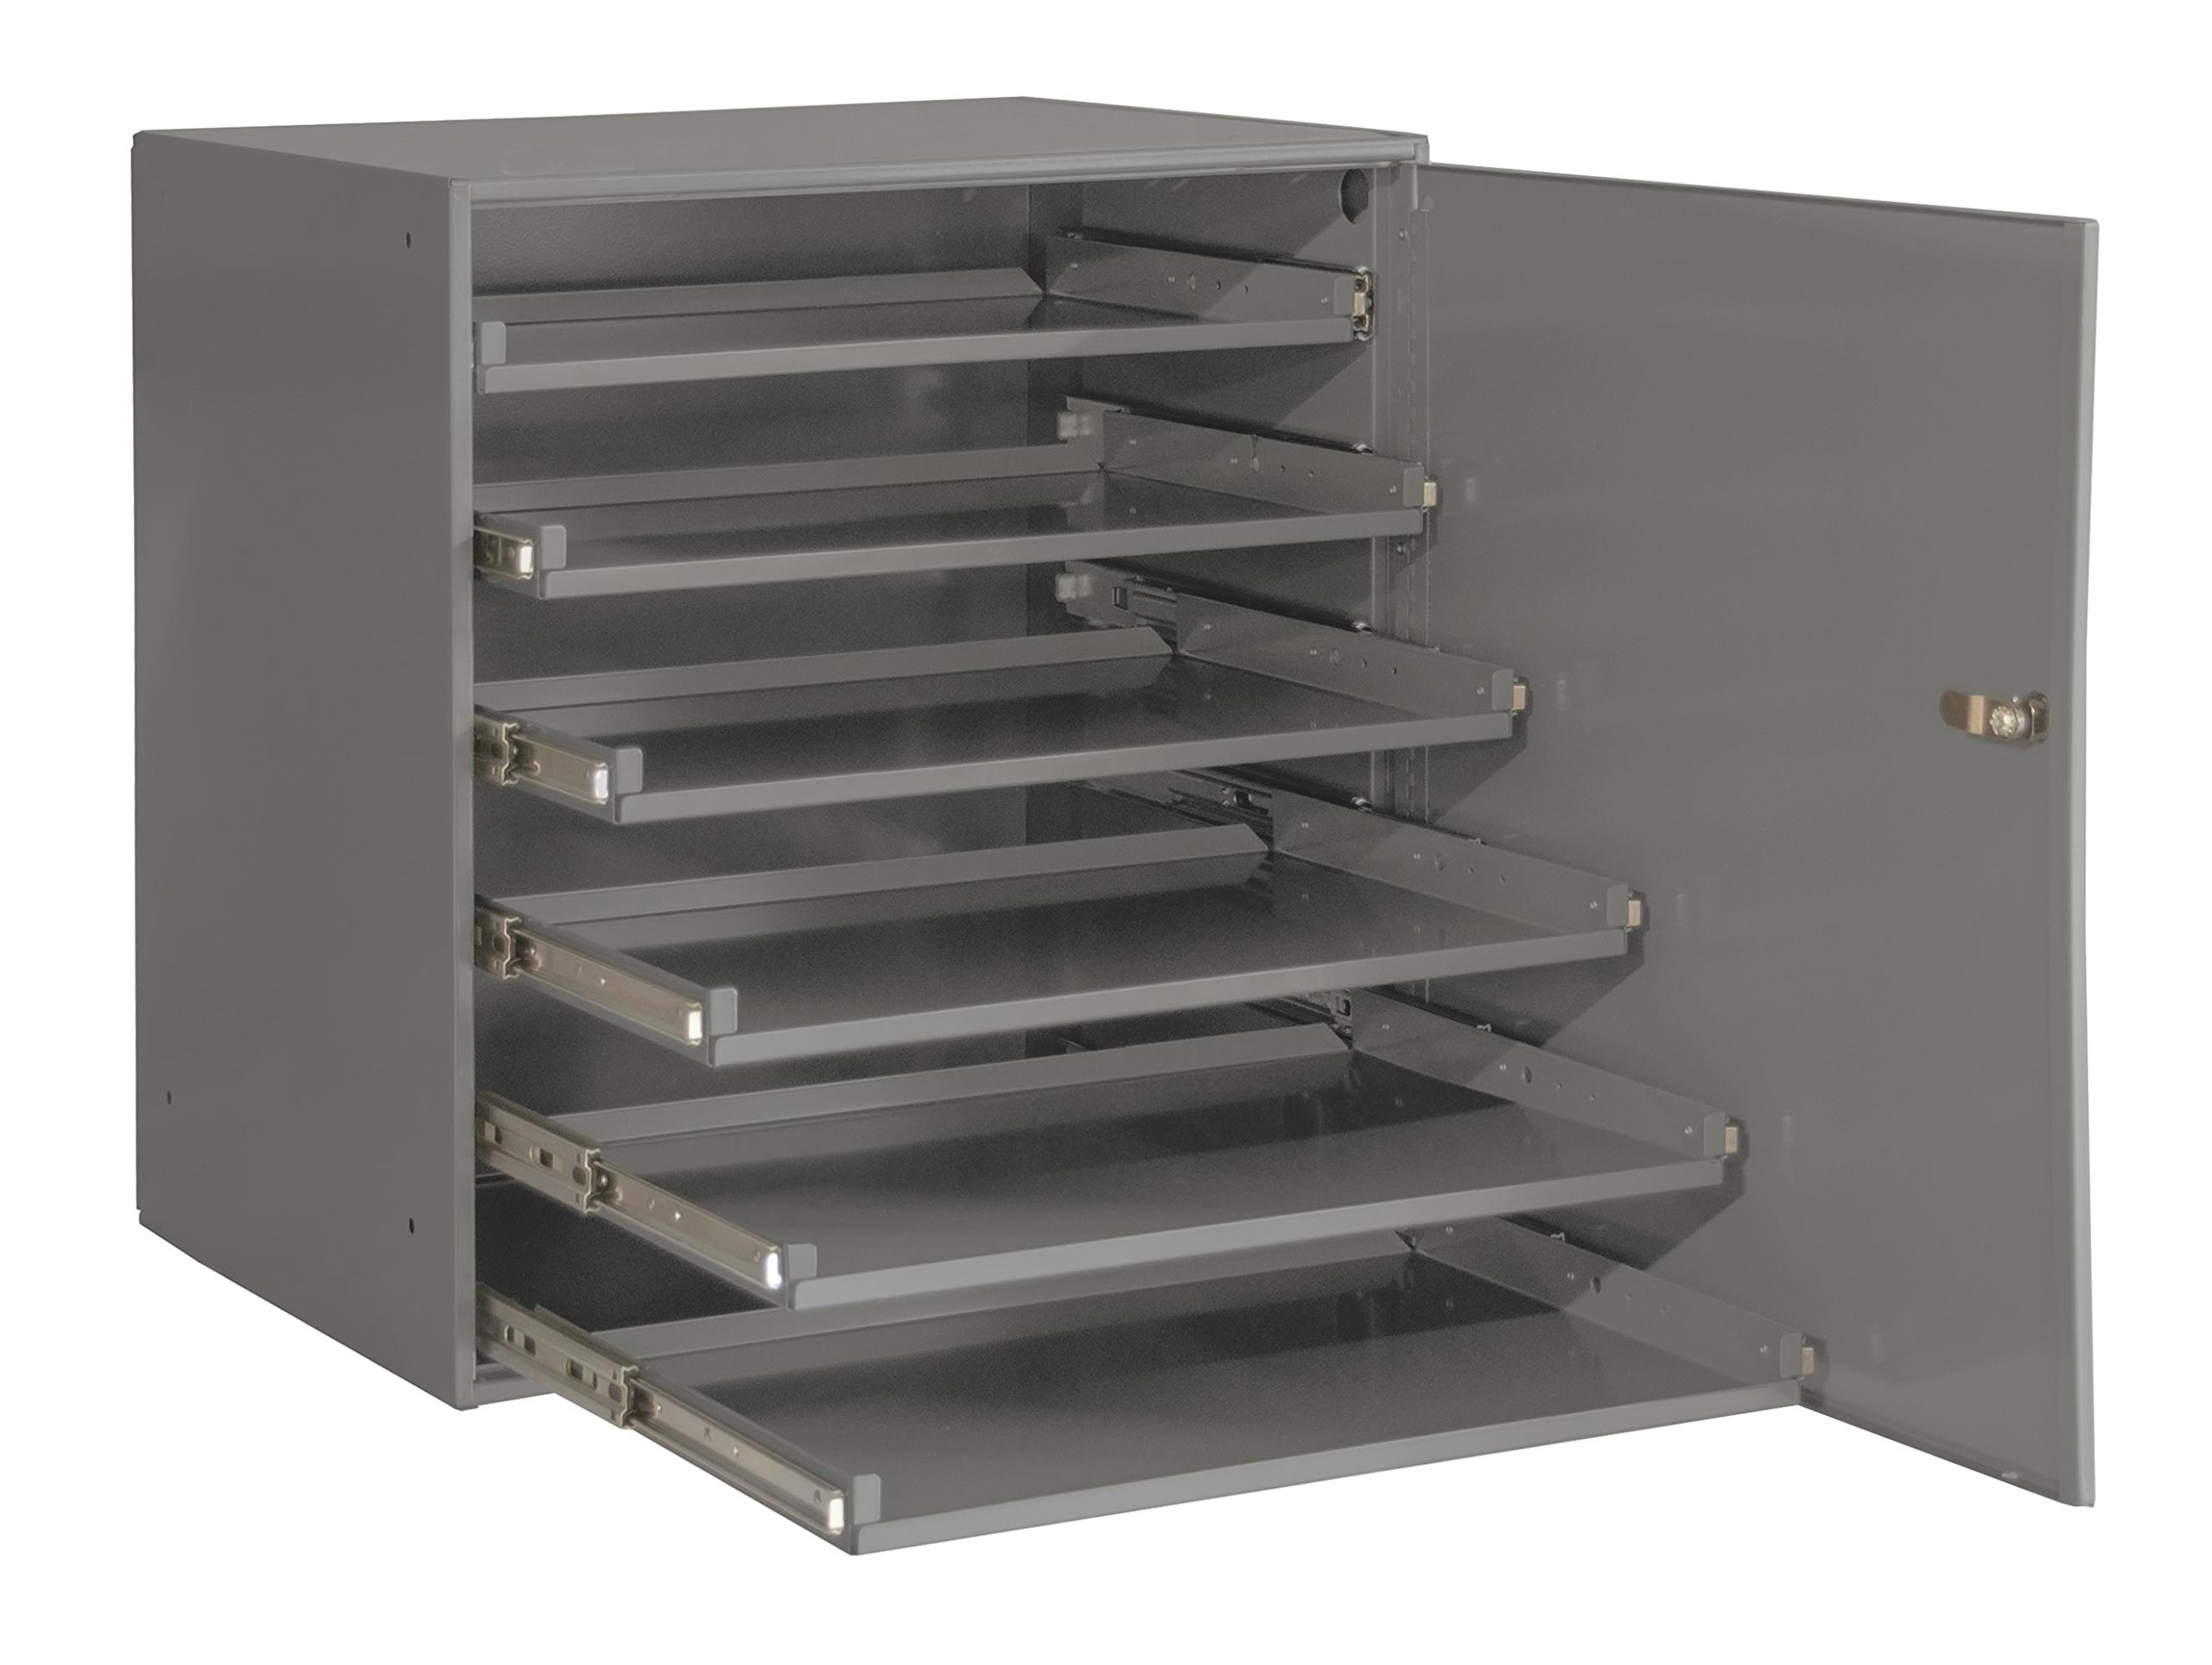 Durham 321B-95-DR Heavy Duty Bearing Slide Rack With Door (Holds 6 Large Compartment Boxes), 20-5/16'' x 15-15/16'' x 21-7/8''